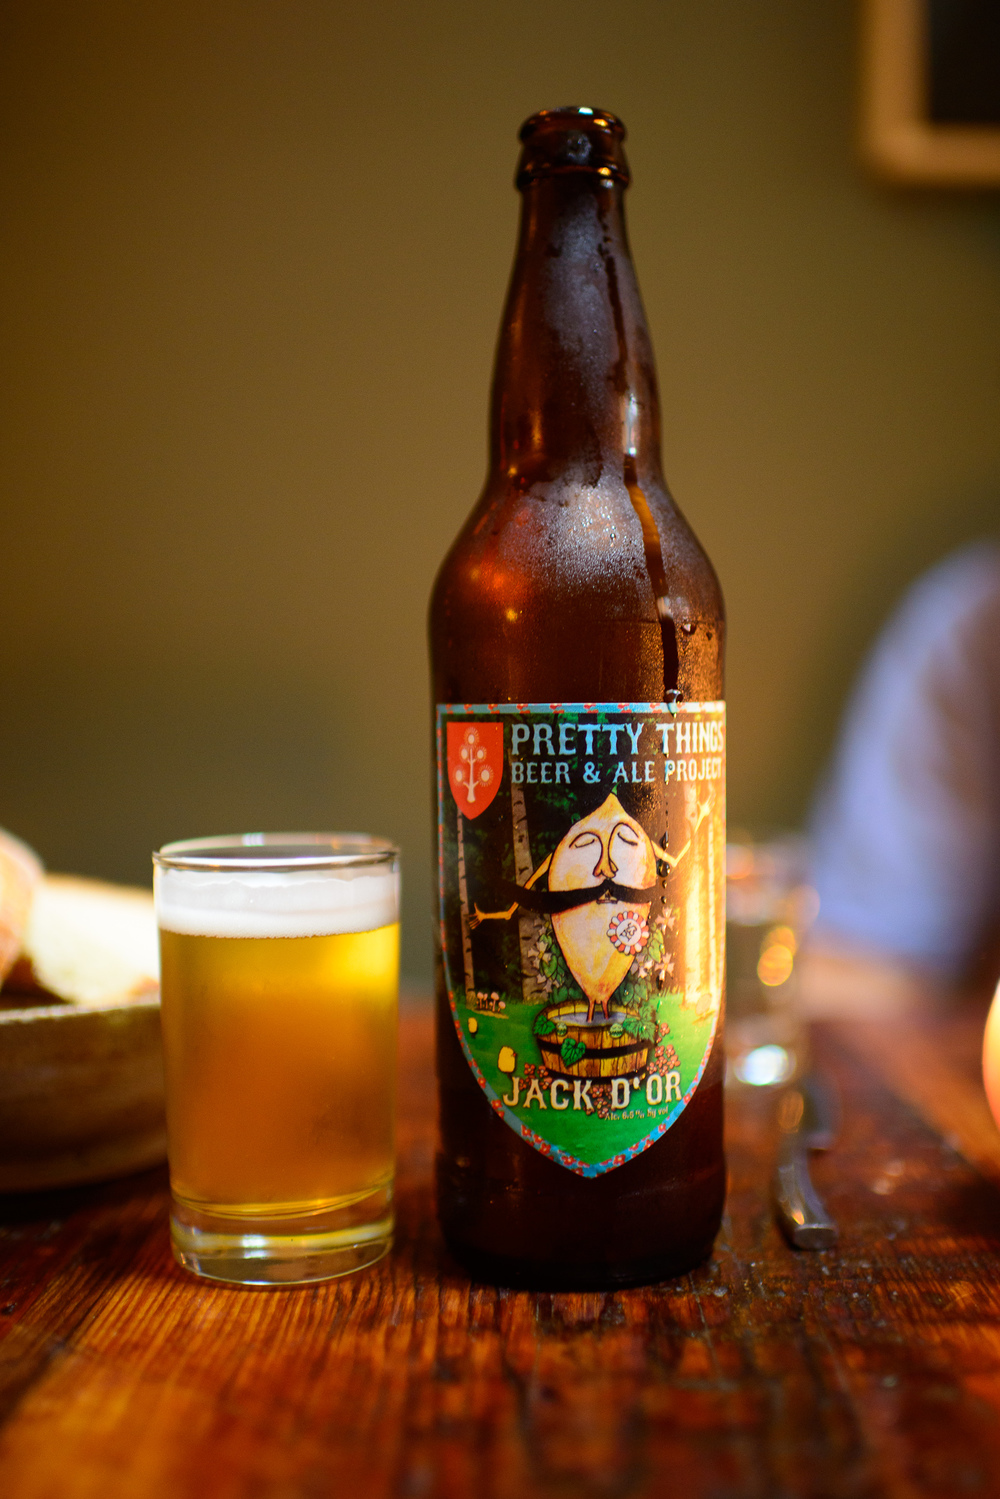 Pretty Things Ale Jack D'Or